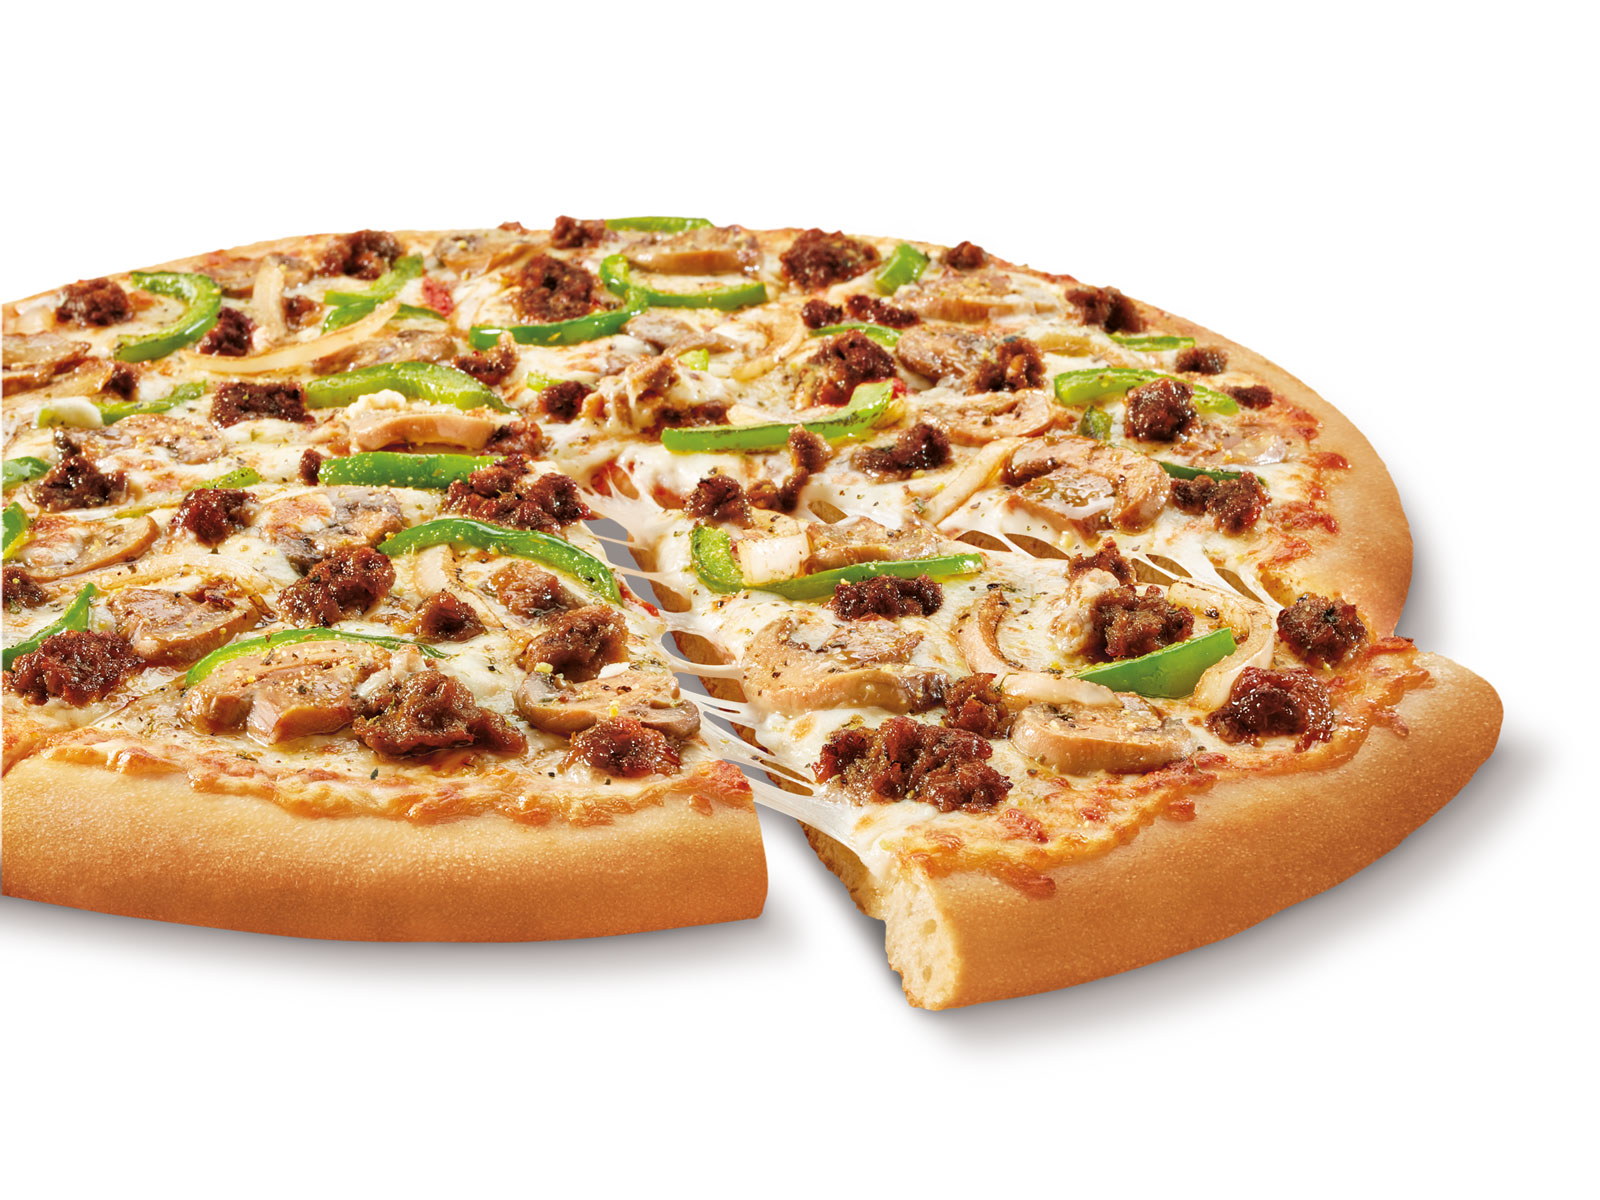 Impossible Pizza Little Caesars Adds Plant Based Sausage To